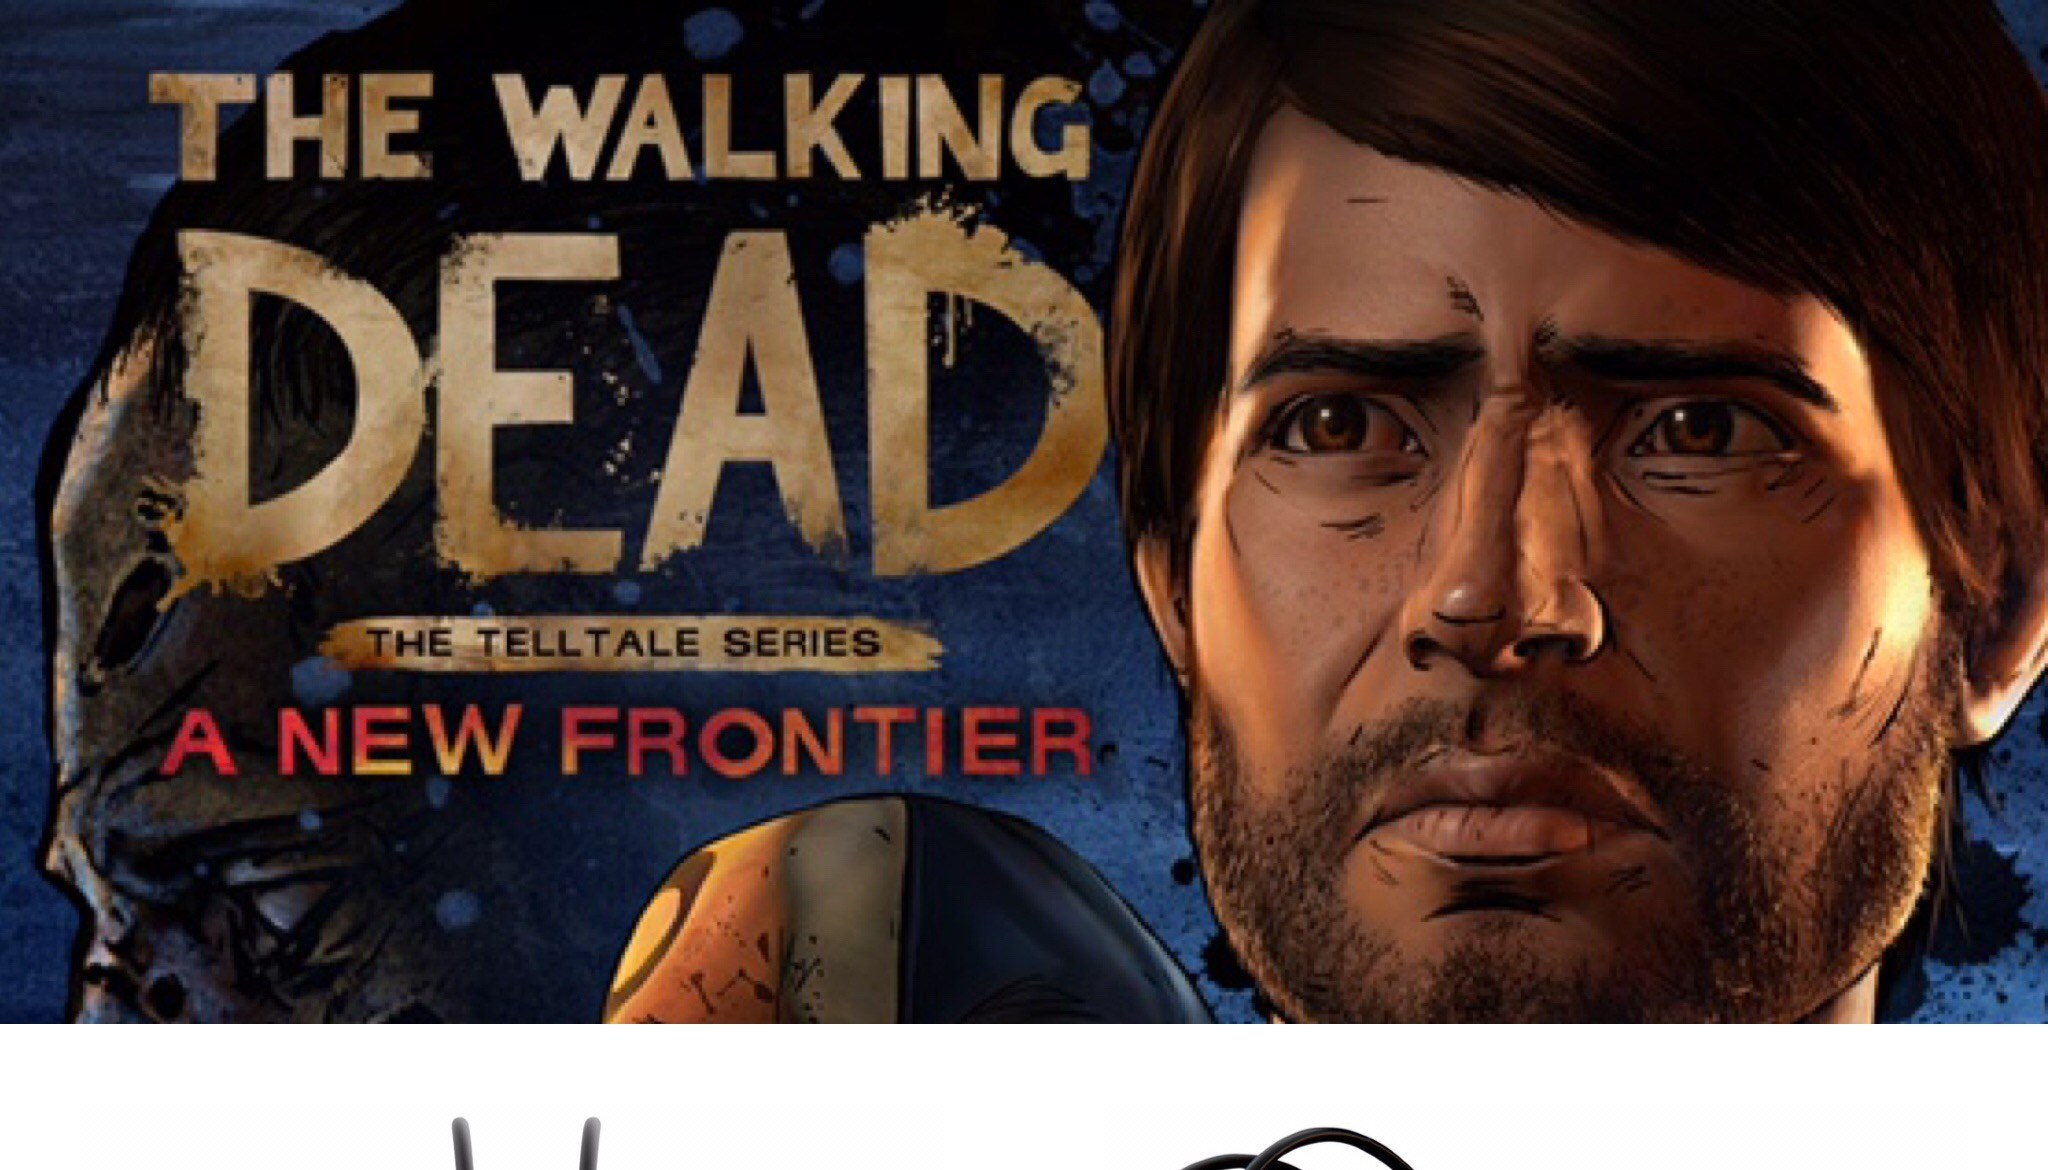 The Walking Dead/Headphone Giveaway Graphic